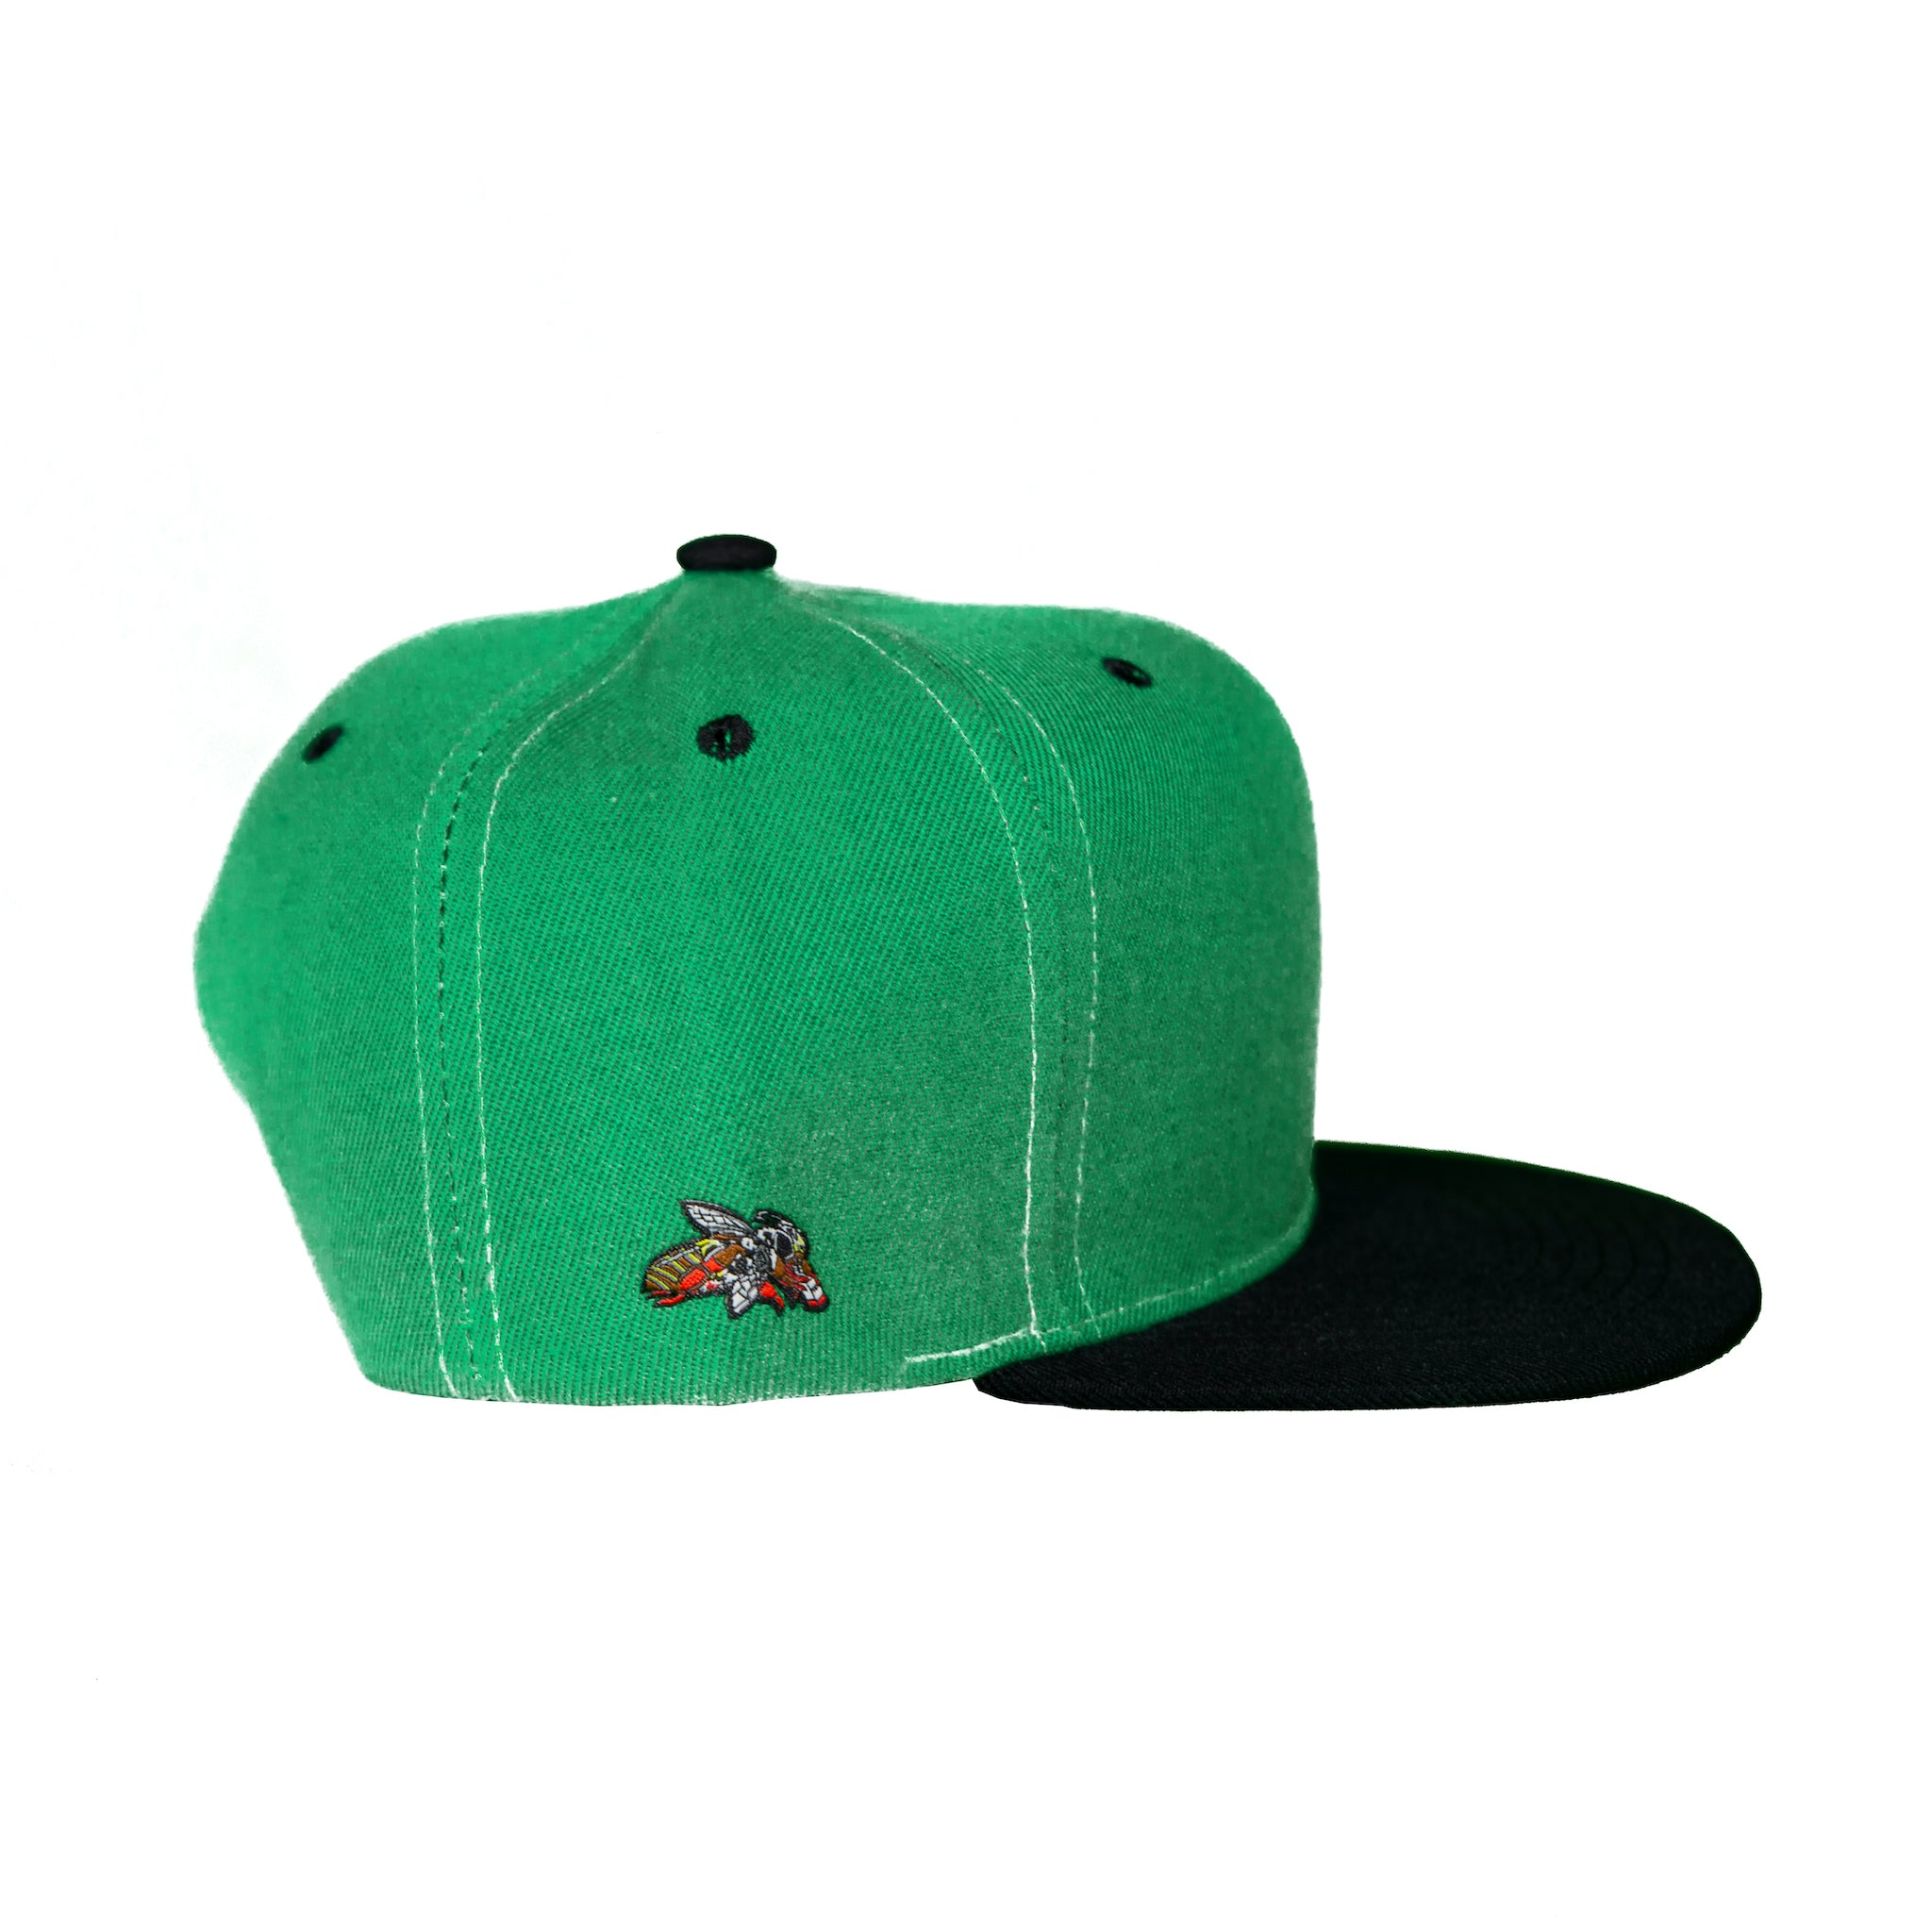 Basic Two-Tone Snap Back in Green and Black